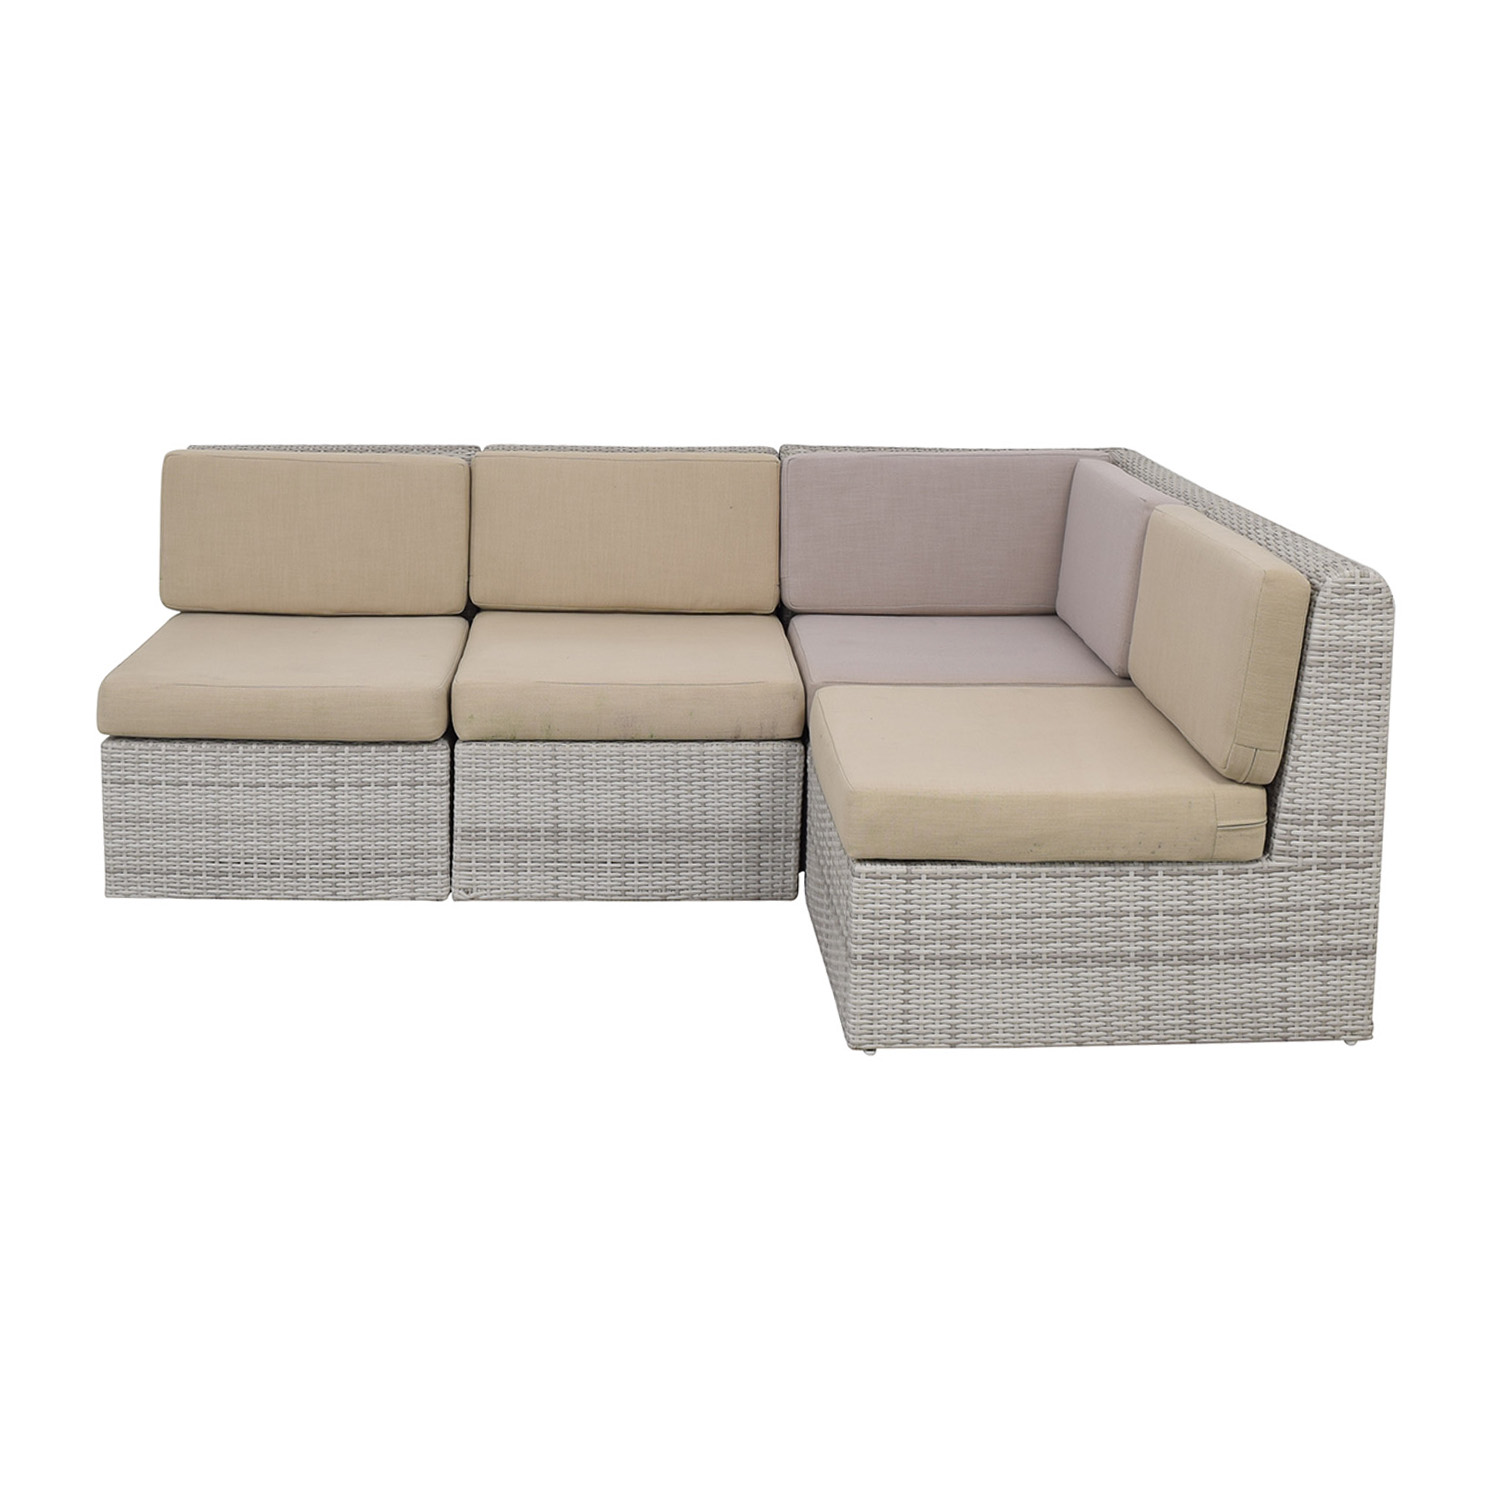 shop CB2 Ebb Outdoor Sectional Sofa CB2 Sofas